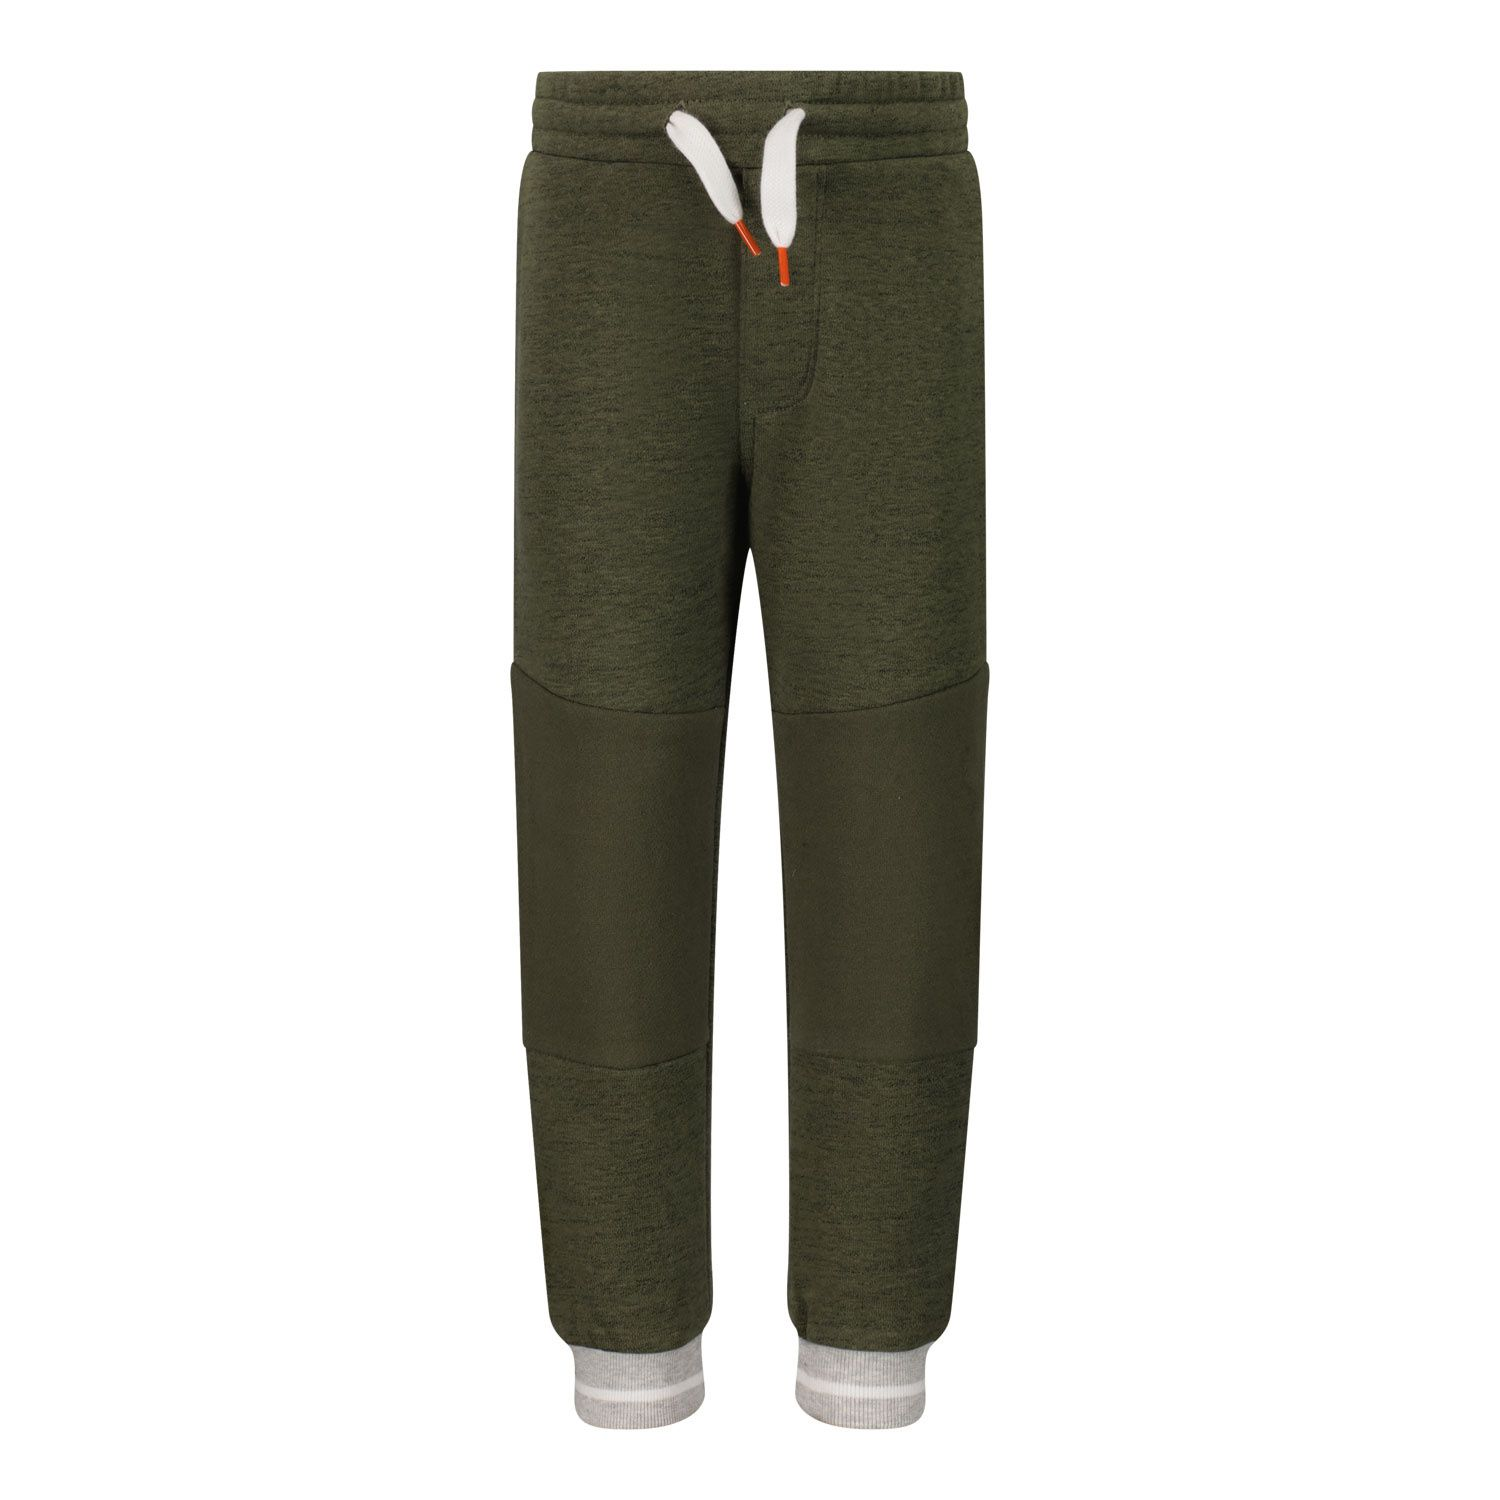 Picture of Timberland T04A05 baby pants army